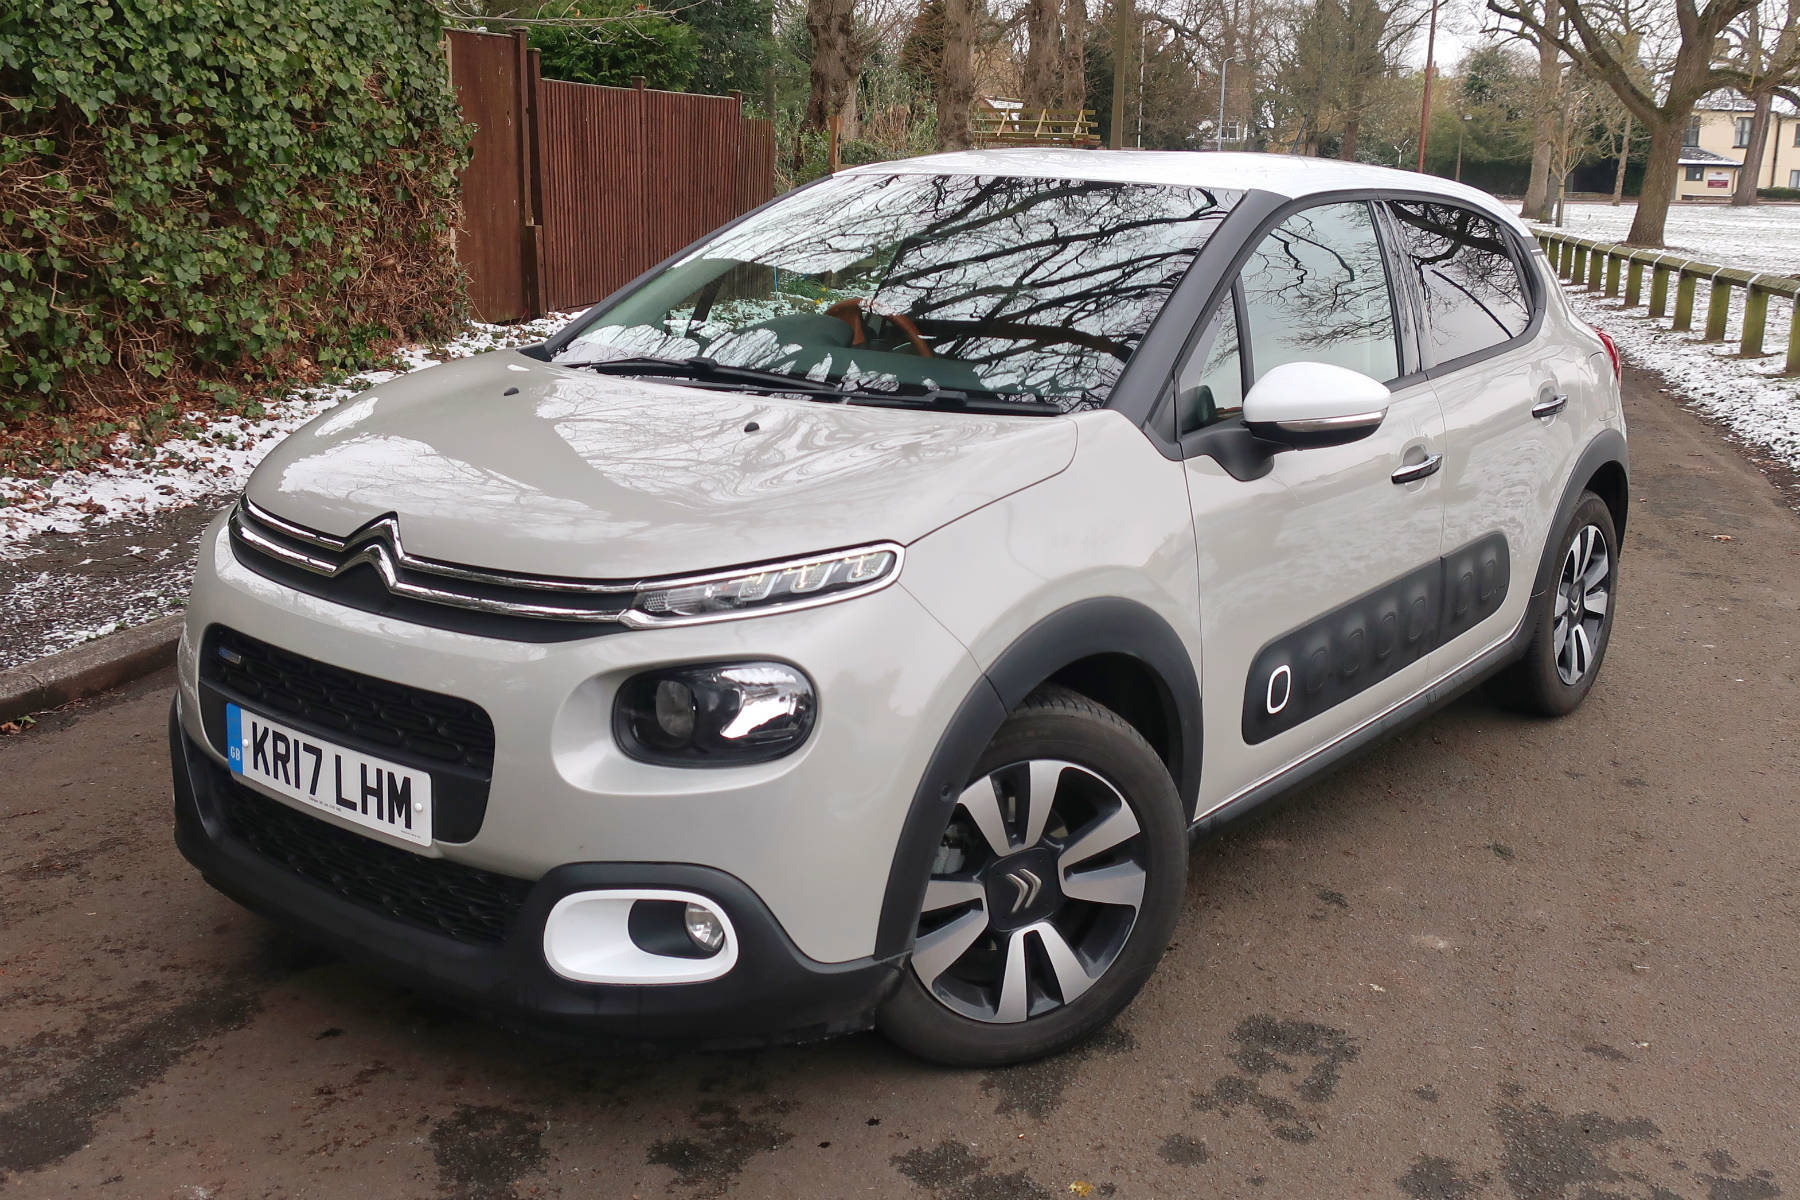 citroen c3 goodbye to the beige beauty motoring research. Black Bedroom Furniture Sets. Home Design Ideas